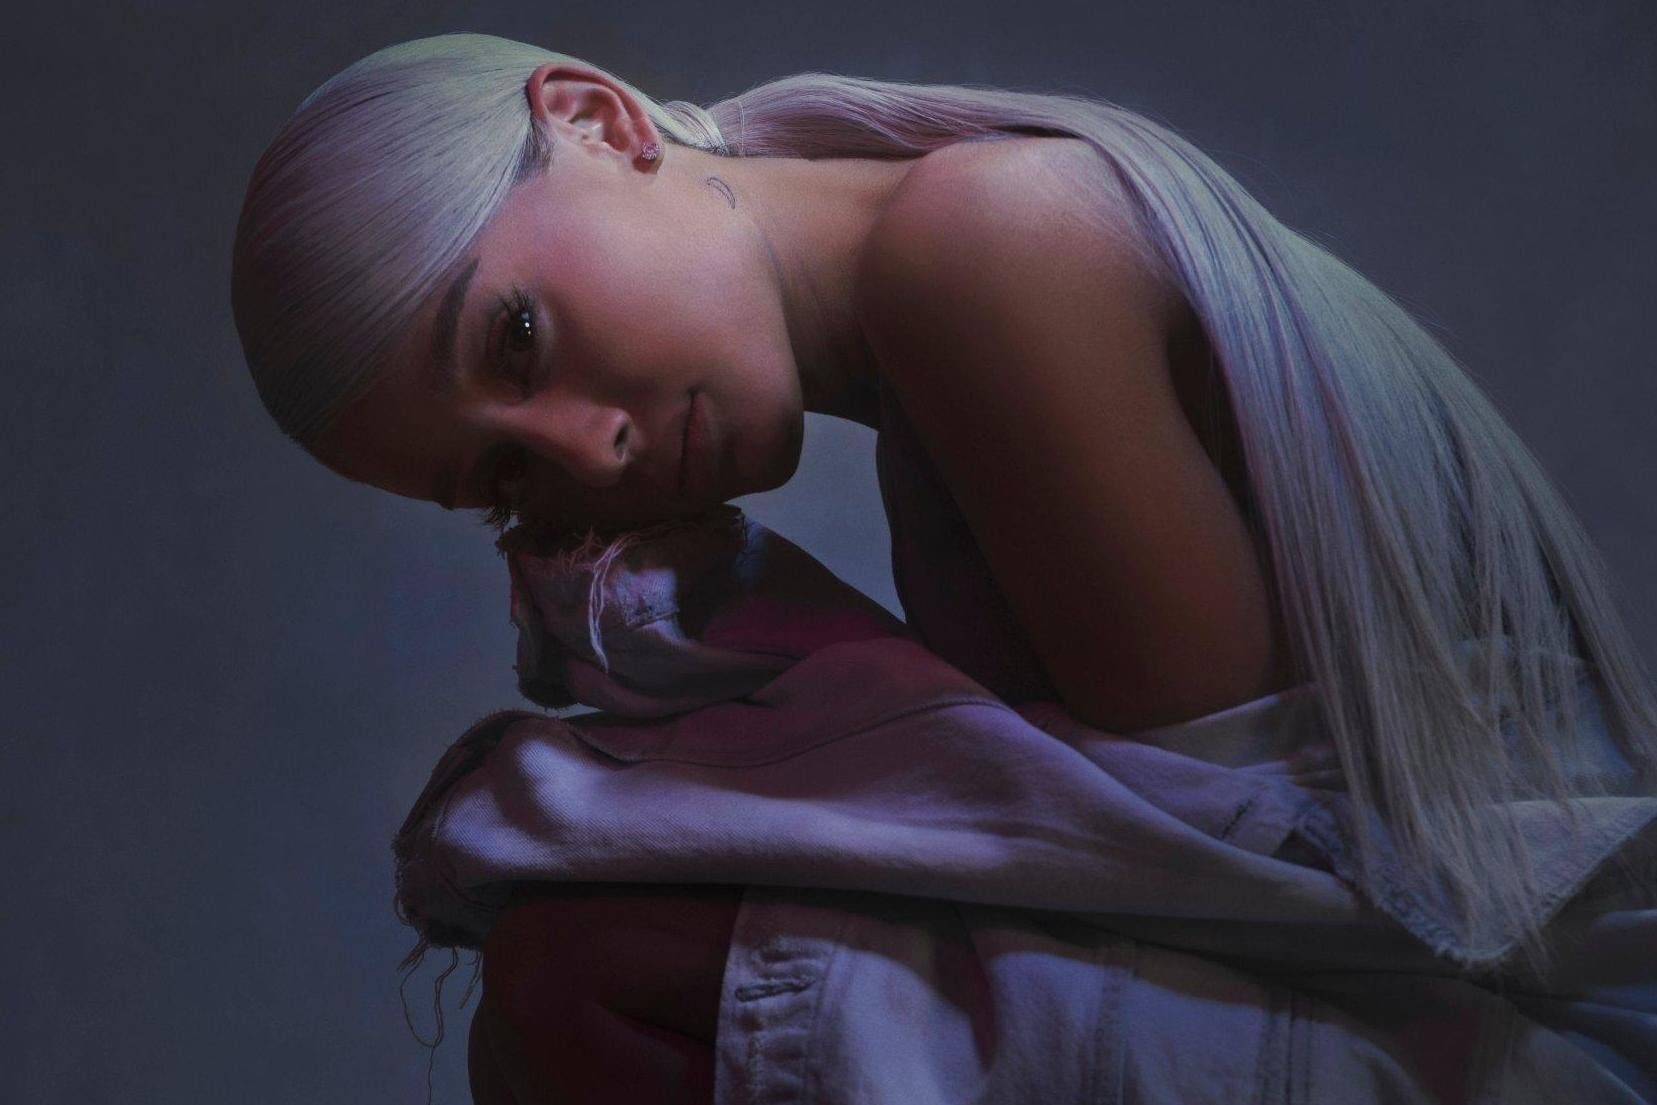 Ariana Grande, Sweetener review: A portrait of an artist in